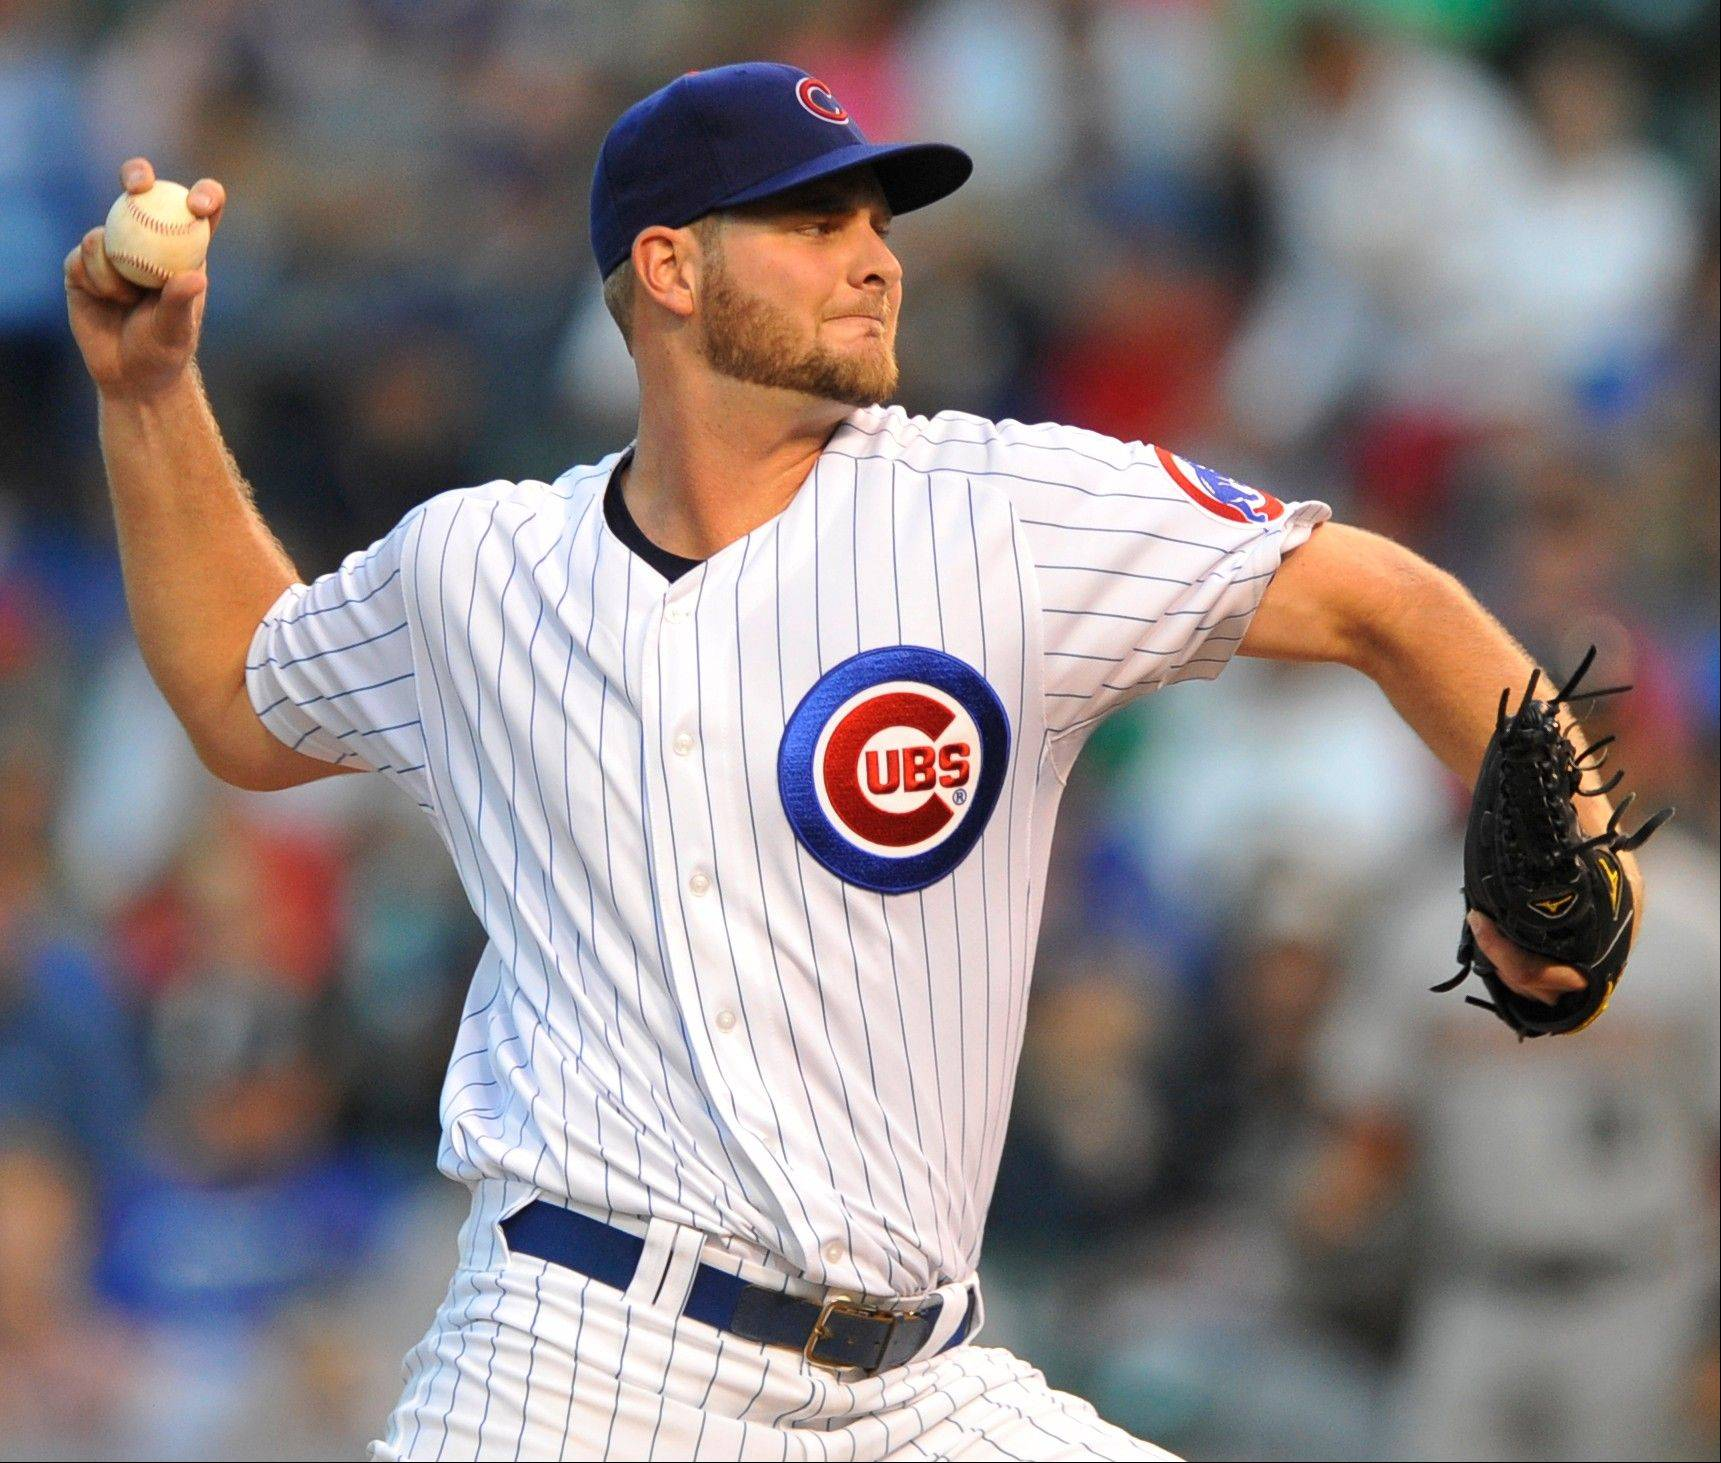 Cubs starter Chris Volstad delivers a pitch against the Houston Astros Tuesday during the first inning at Wrigley Field.